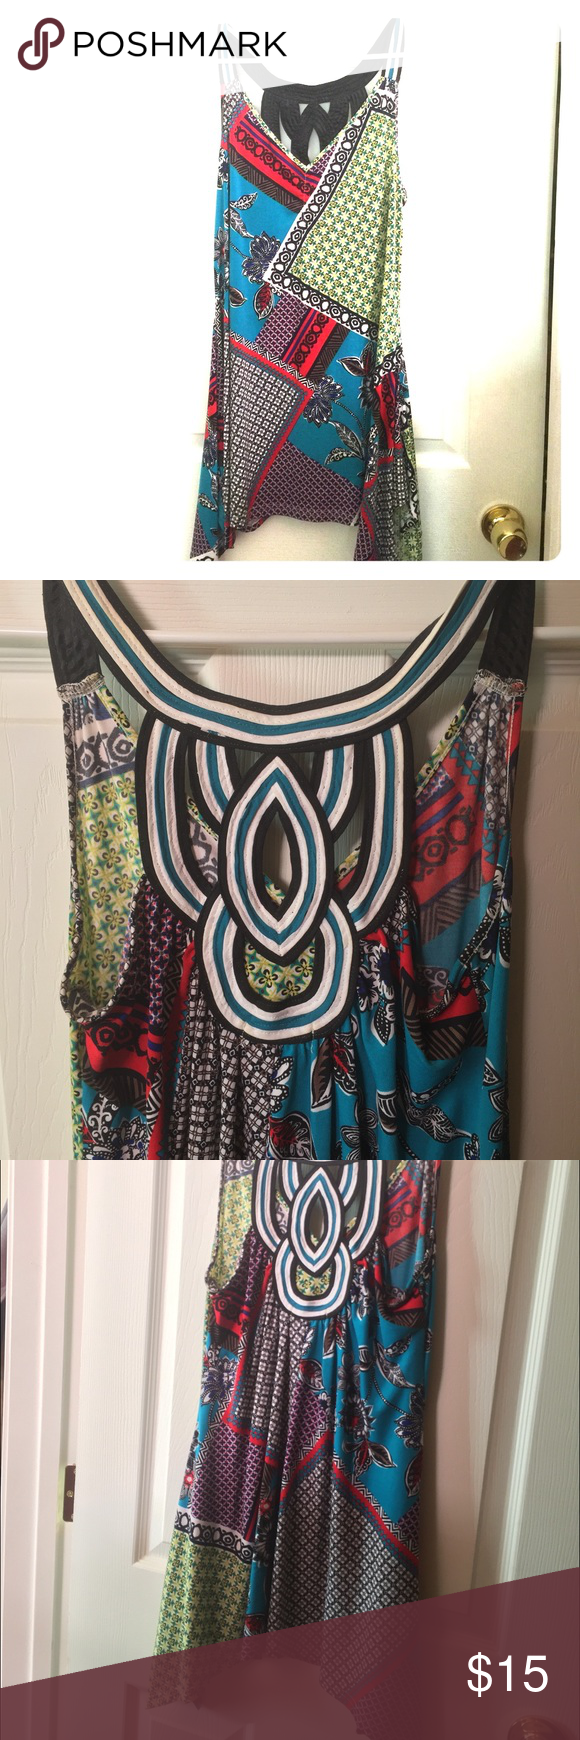 Colorful Tank or Tunic Patterned asymmetrical long tank top/tunic. Great with jeans or leggings. Beautifully designed back. In excellent condition. Medium size. No trades, offers accepted through button. Thanks for looking! Candie's Tops Tunics